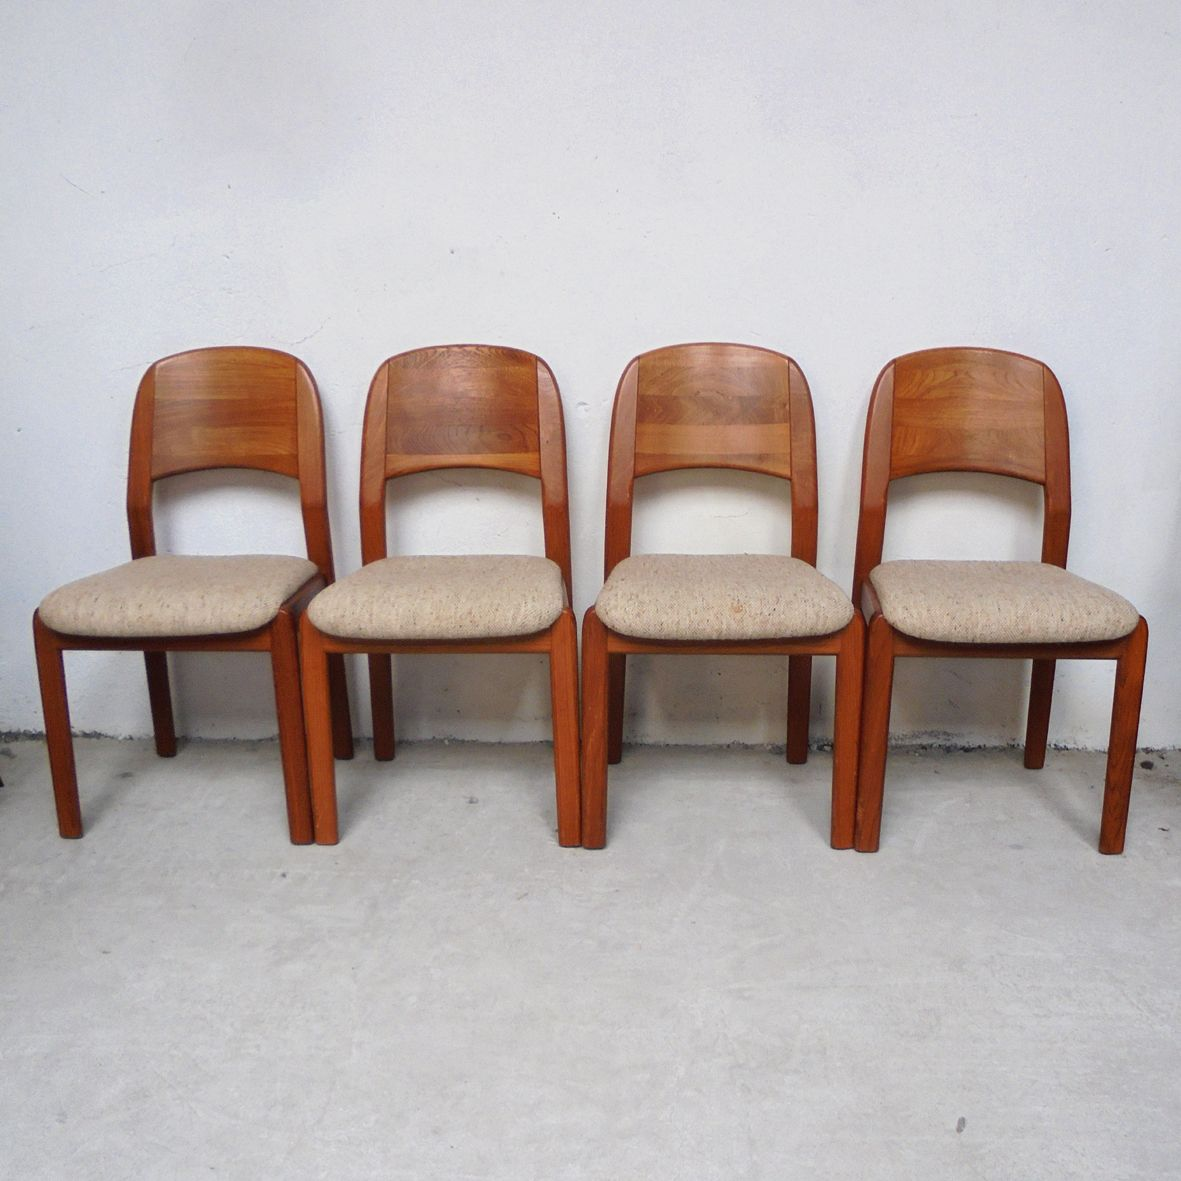 d nische teak esszimmerst hle von dyrlund 1960er 4er set bei pamono kaufen. Black Bedroom Furniture Sets. Home Design Ideas